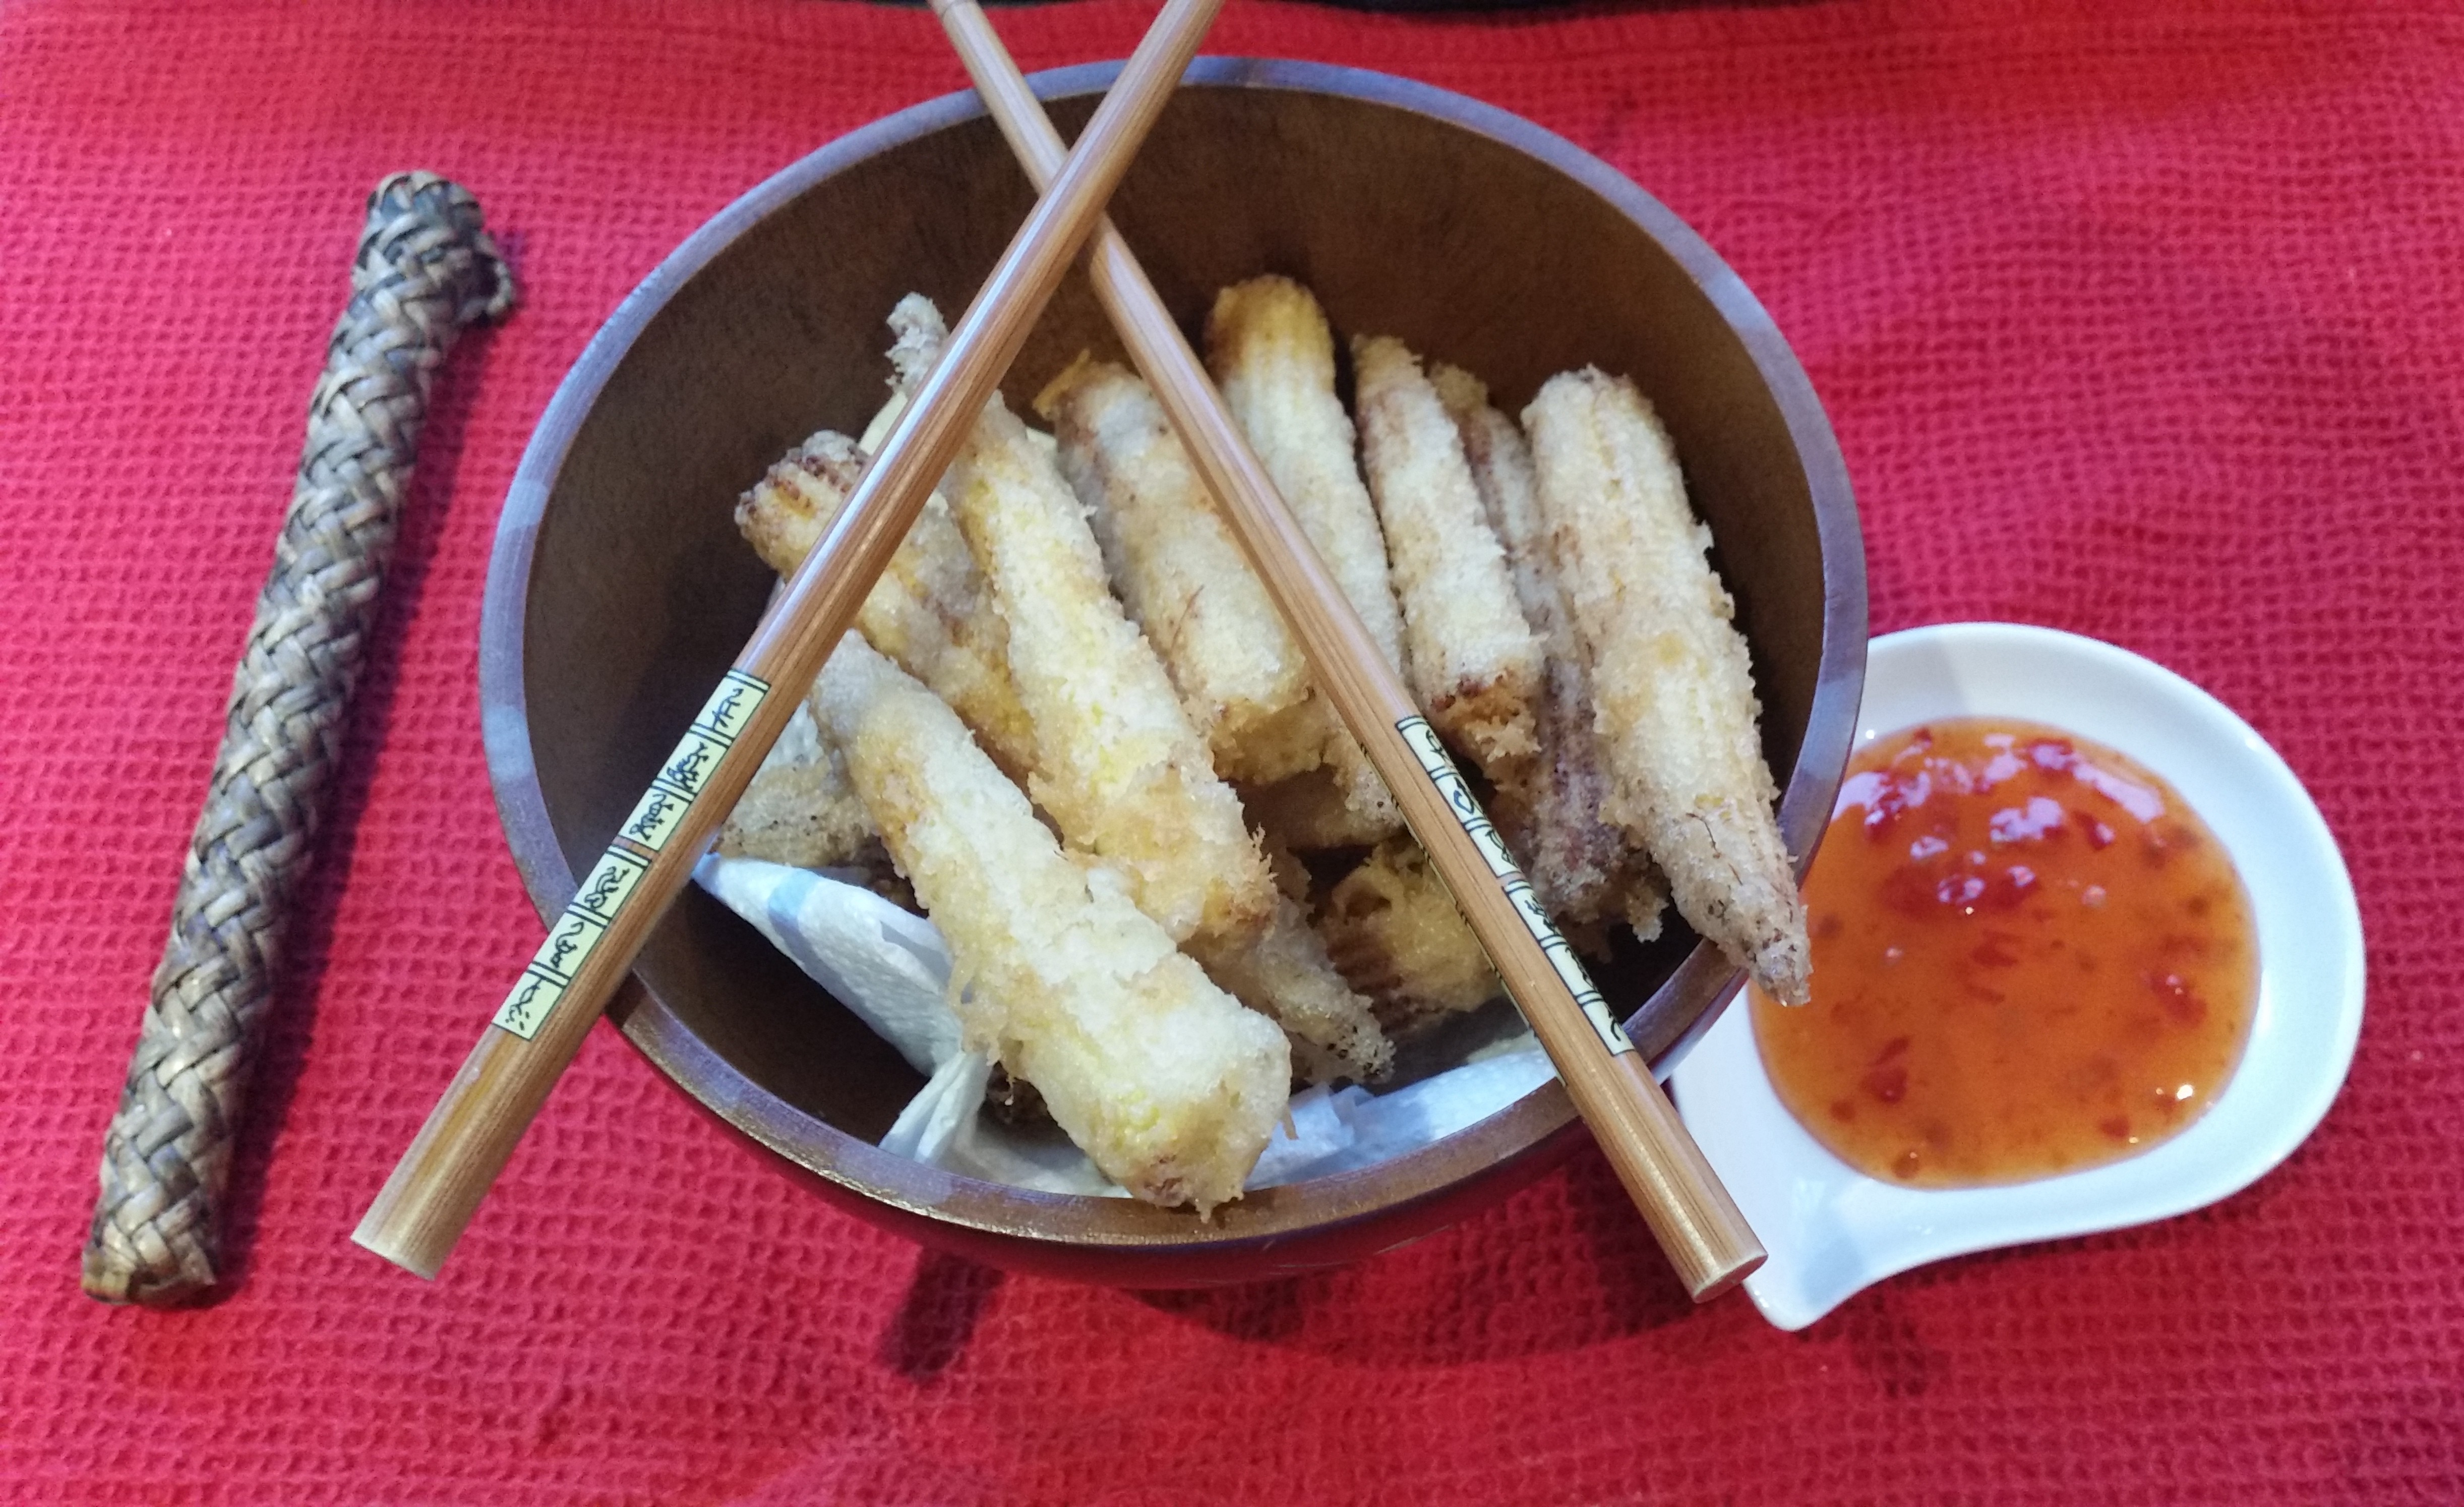 Baby Corn Tempura made with Tonic Water batter